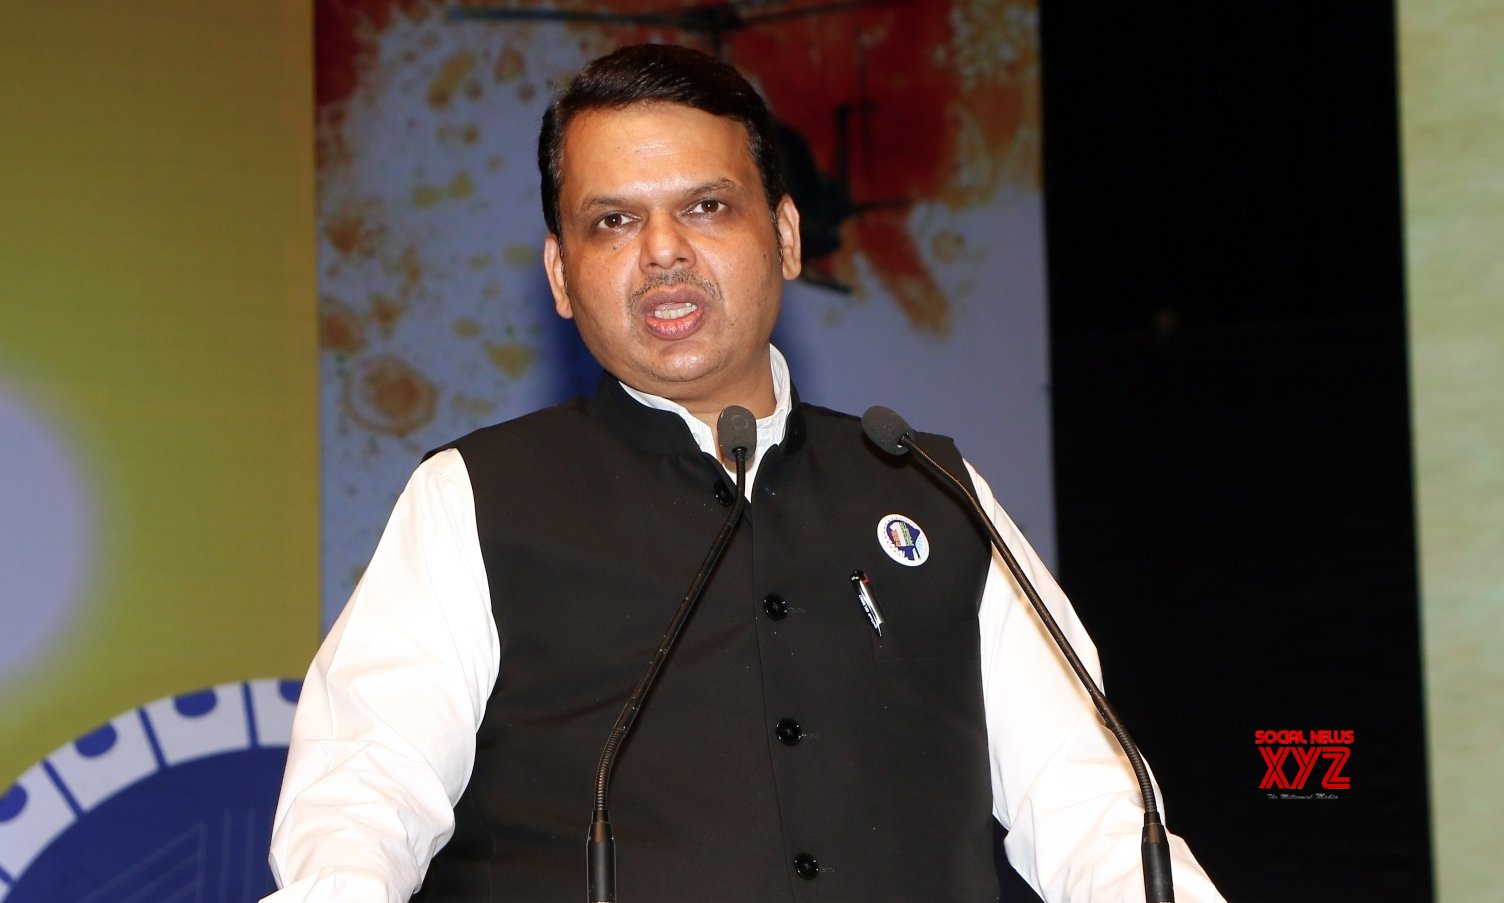 Restrain the Fadnavis couple, Shiv Sena leader urges RSS